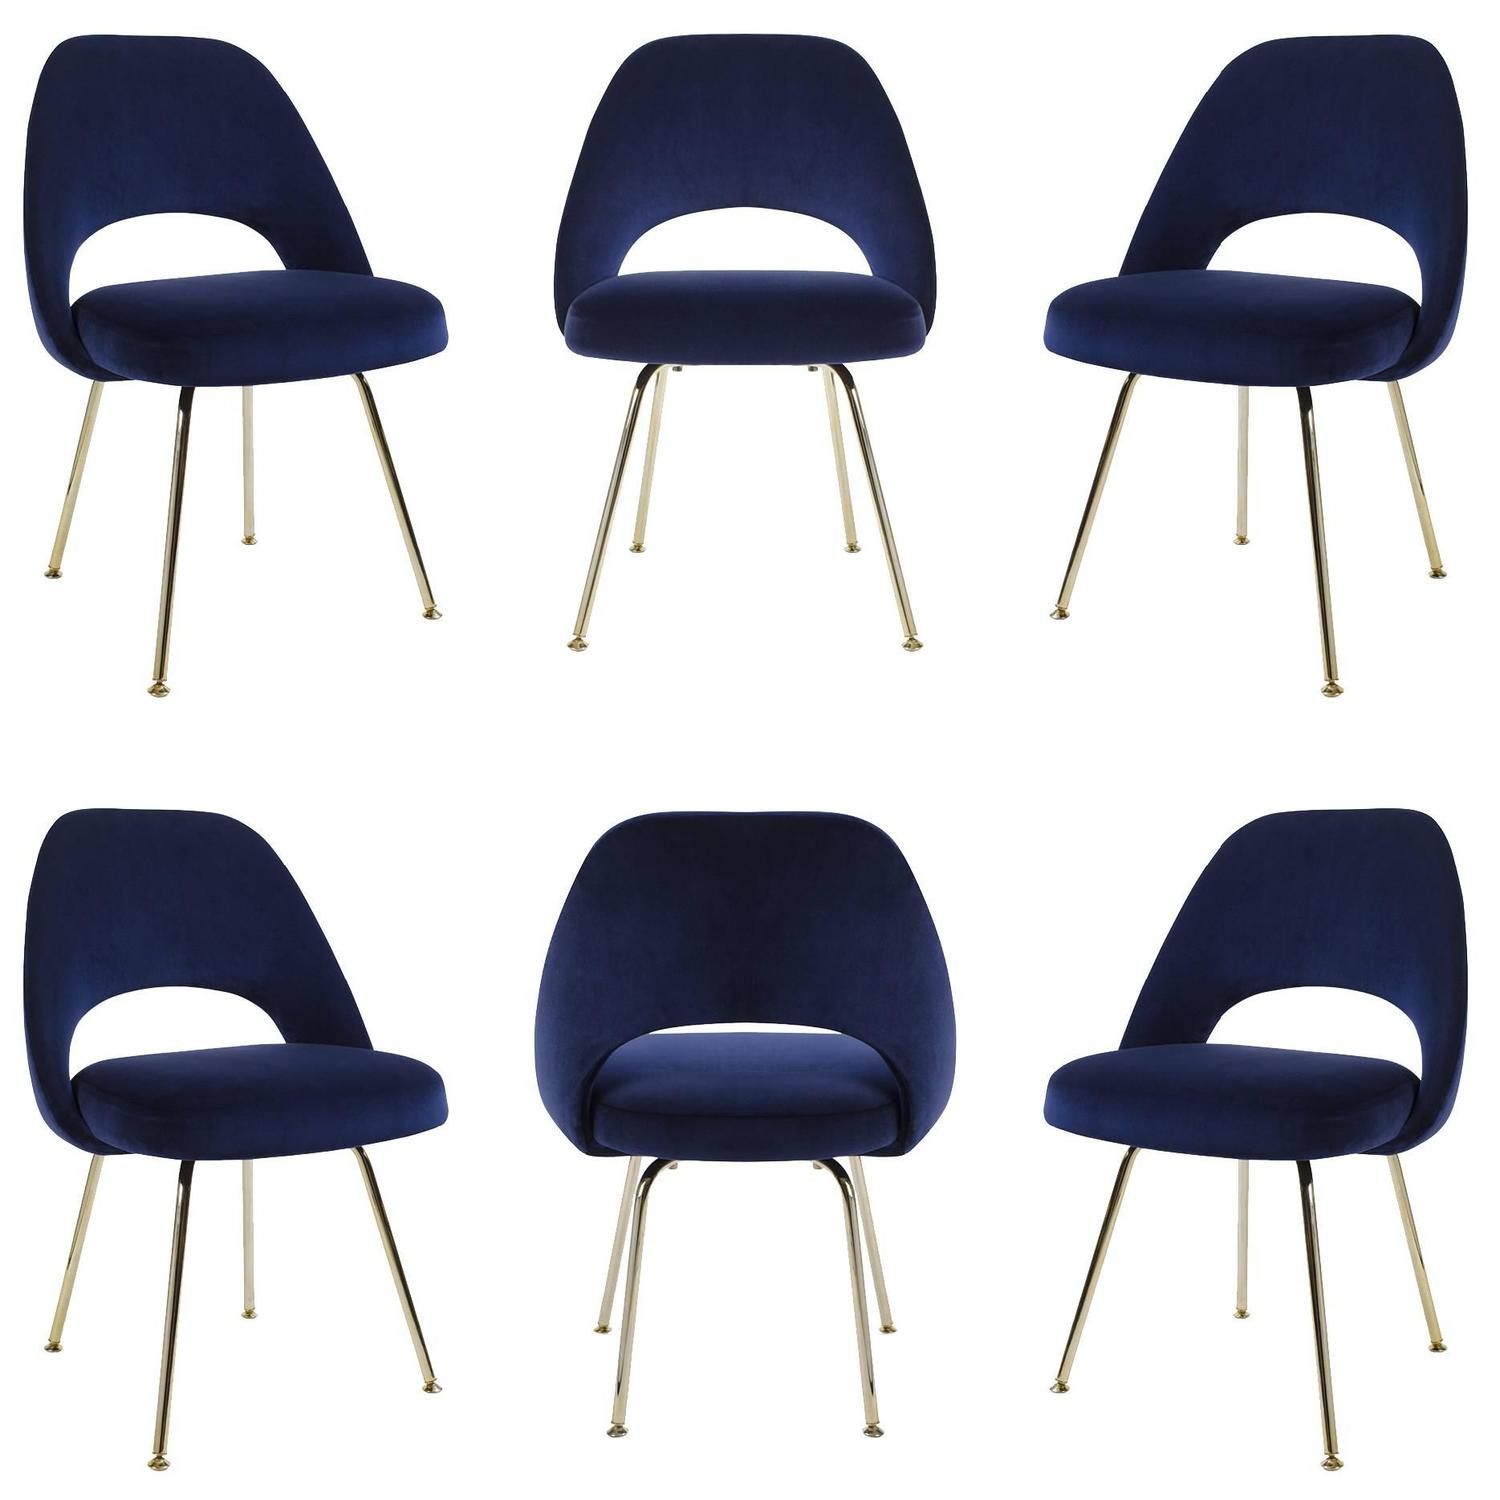 Chair saarinen executive chair - Saarinen Executive Armless Chairs In Navy Velvet 24k Gold Edition Set Of 6 For Sale At 1stdibs